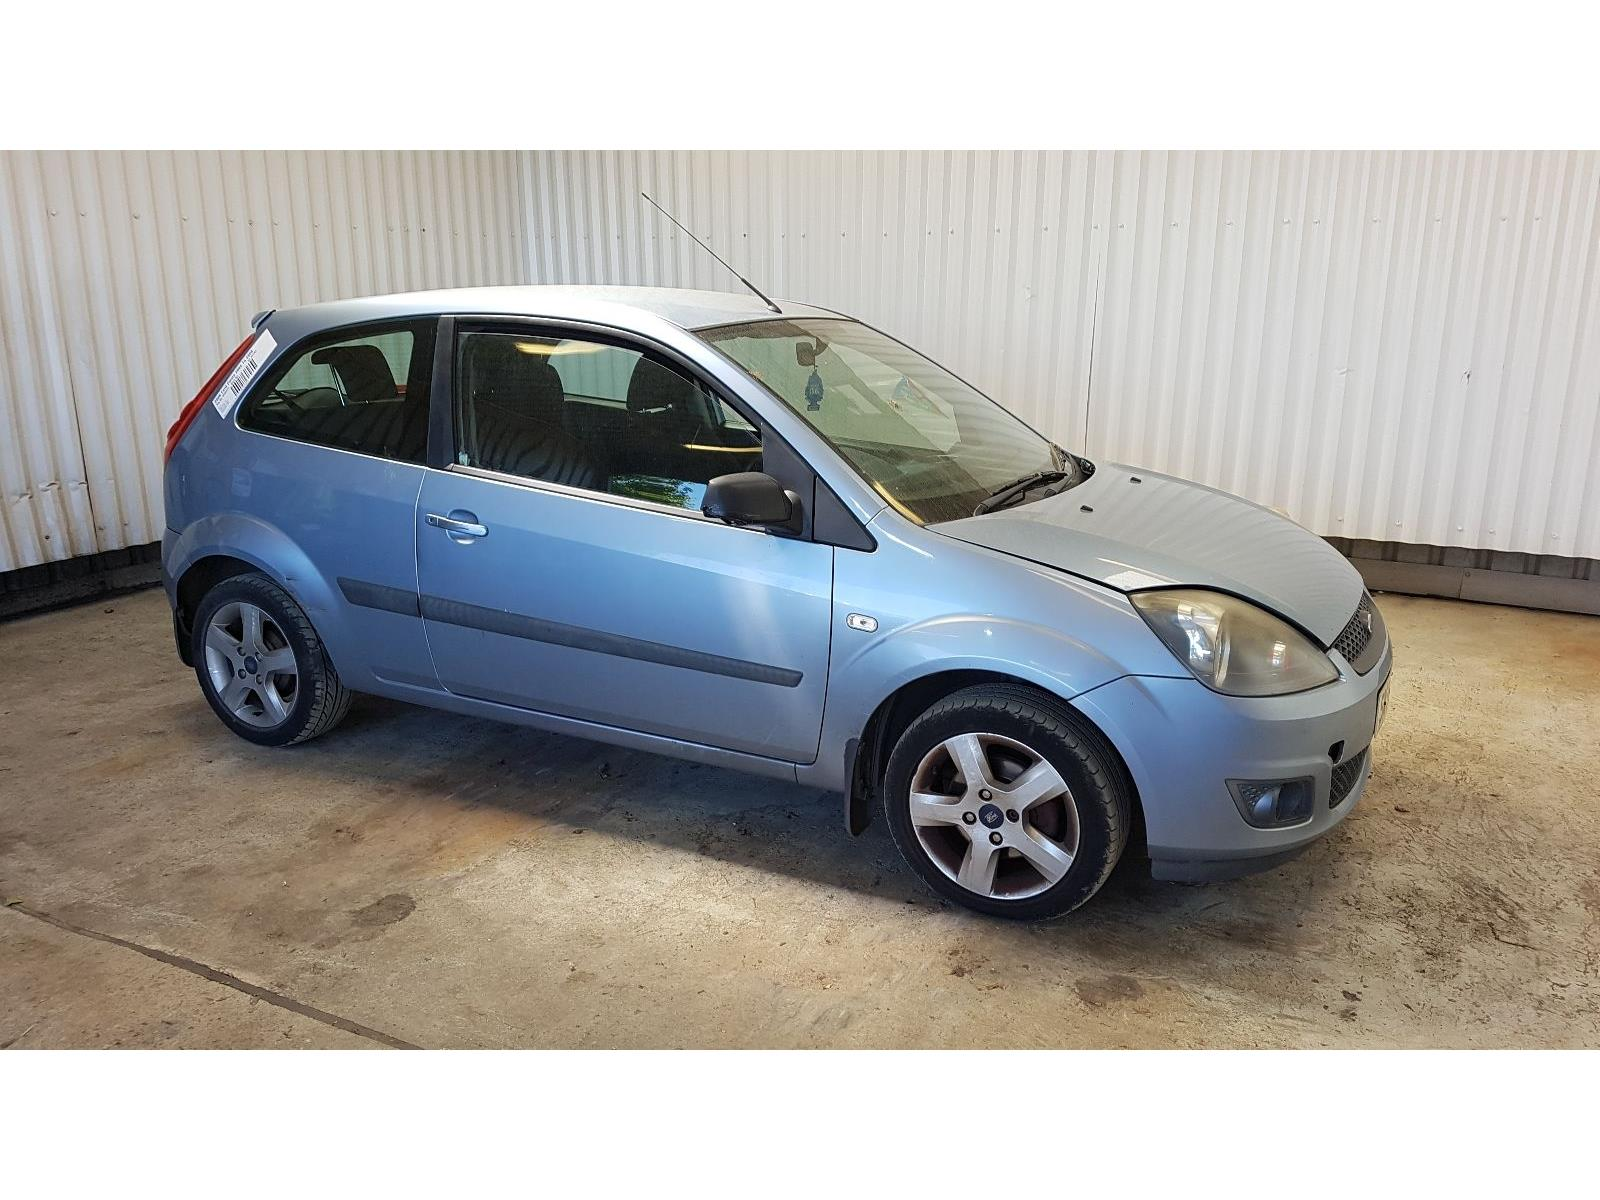 FORD MK6 FL (B256/7) 2002 TO 2008 FREEDOM 16V 3 DOOR HATCHBACK